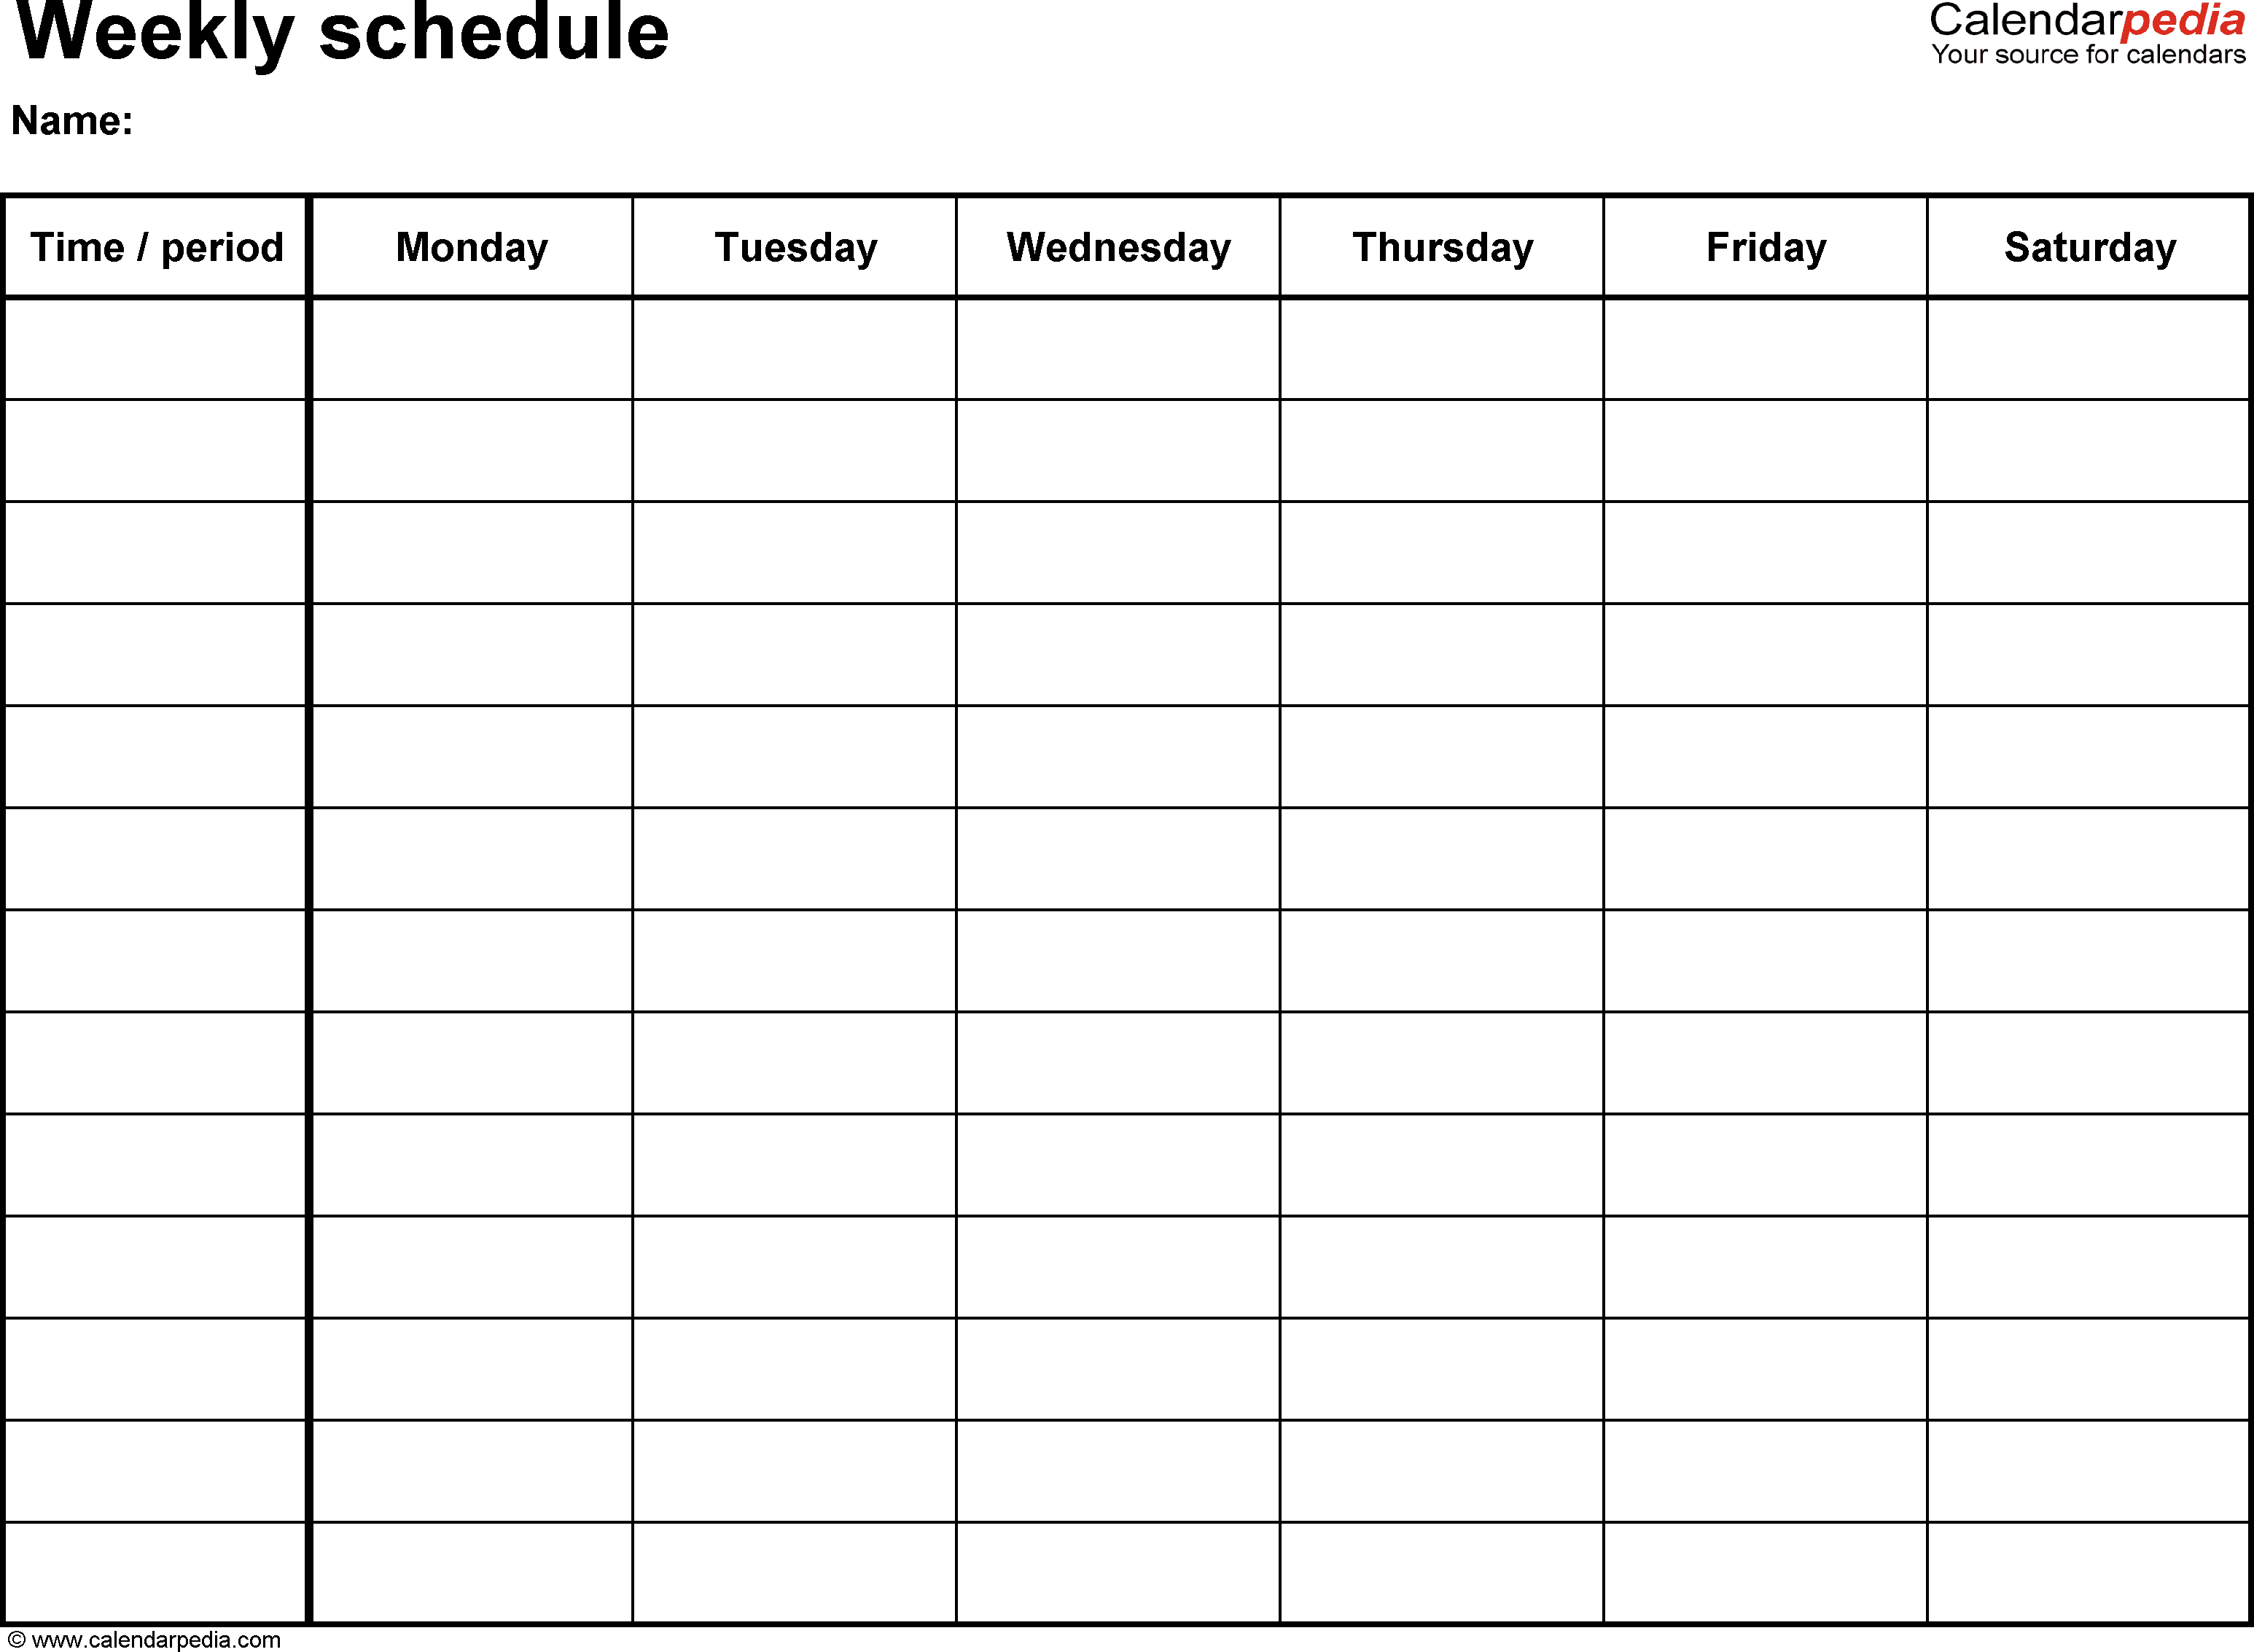 Free Weekly Schedule Templates For Pdf  18 Templates pertaining to Calendarpedia Weekly Schedule